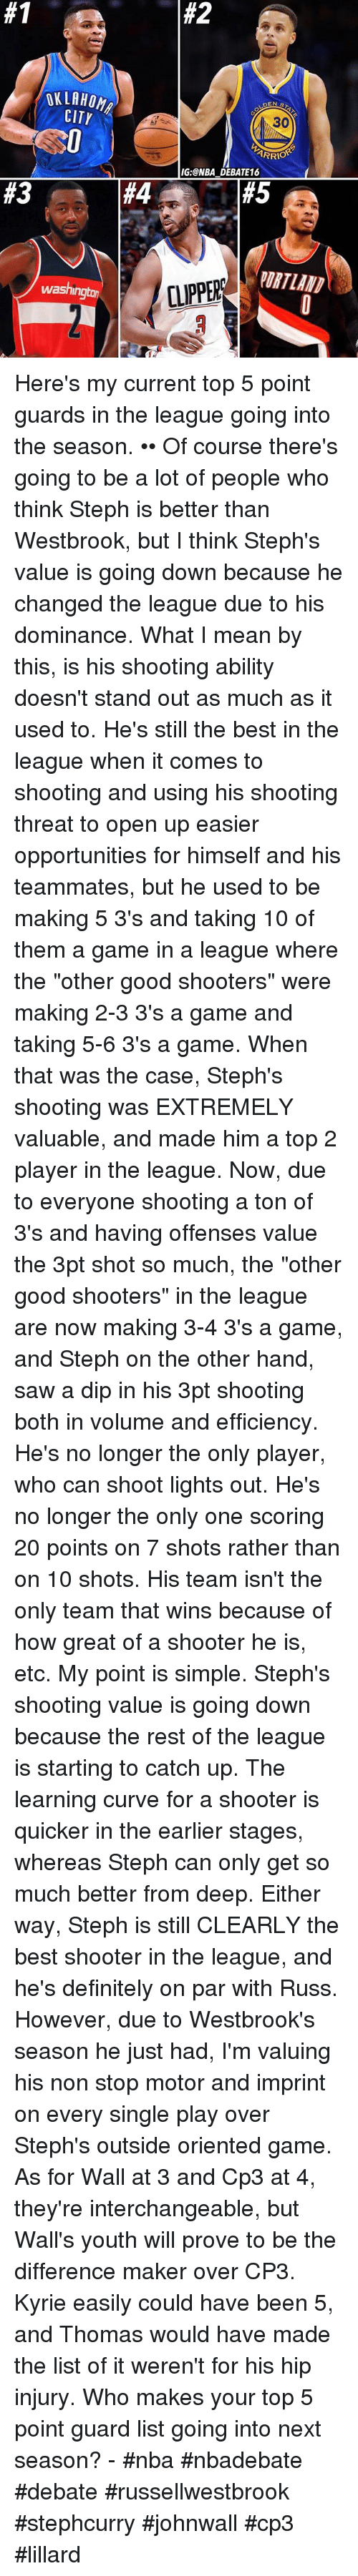 """hand saw:  #2  OKLAHOM  CITY  30  IG:ONBA DEBATE16  #3  #4  #5  URTLAIN  CLIPPERS  washing Here's my current top 5 point guards in the league going into the season. •• Of course there's going to be a lot of people who think Steph is better than Westbrook, but I think Steph's value is going down because he changed the league due to his dominance. What I mean by this, is his shooting ability doesn't stand out as much as it used to. He's still the best in the league when it comes to shooting and using his shooting threat to open up easier opportunities for himself and his teammates, but he used to be making 5 3's and taking 10 of them a game in a league where the """"other good shooters"""" were making 2-3 3's a game and taking 5-6 3's a game. When that was the case, Steph's shooting was EXTREMELY valuable, and made him a top 2 player in the league. Now, due to everyone shooting a ton of 3's and having offenses value the 3pt shot so much, the """"other good shooters"""" in the league are now making 3-4 3's a game, and Steph on the other hand, saw a dip in his 3pt shooting both in volume and efficiency. He's no longer the only player, who can shoot lights out. He's no longer the only one scoring 20 points on 7 shots rather than on 10 shots. His team isn't the only team that wins because of how great of a shooter he is, etc. My point is simple. Steph's shooting value is going down because the rest of the league is starting to catch up. The learning curve for a shooter is quicker in the earlier stages, whereas Steph can only get so much better from deep. Either way, Steph is still CLEARLY the best shooter in the league, and he's definitely on par with Russ. However, due to Westbrook's season he just had, I'm valuing his non stop motor and imprint on every single play over Steph's outside oriented game. As for Wall at 3 and Cp3 at 4, they're interchangeable, but Wall's youth will prove to be the difference maker over CP3. Kyrie easily could have been 5, and Thomas would have made the """